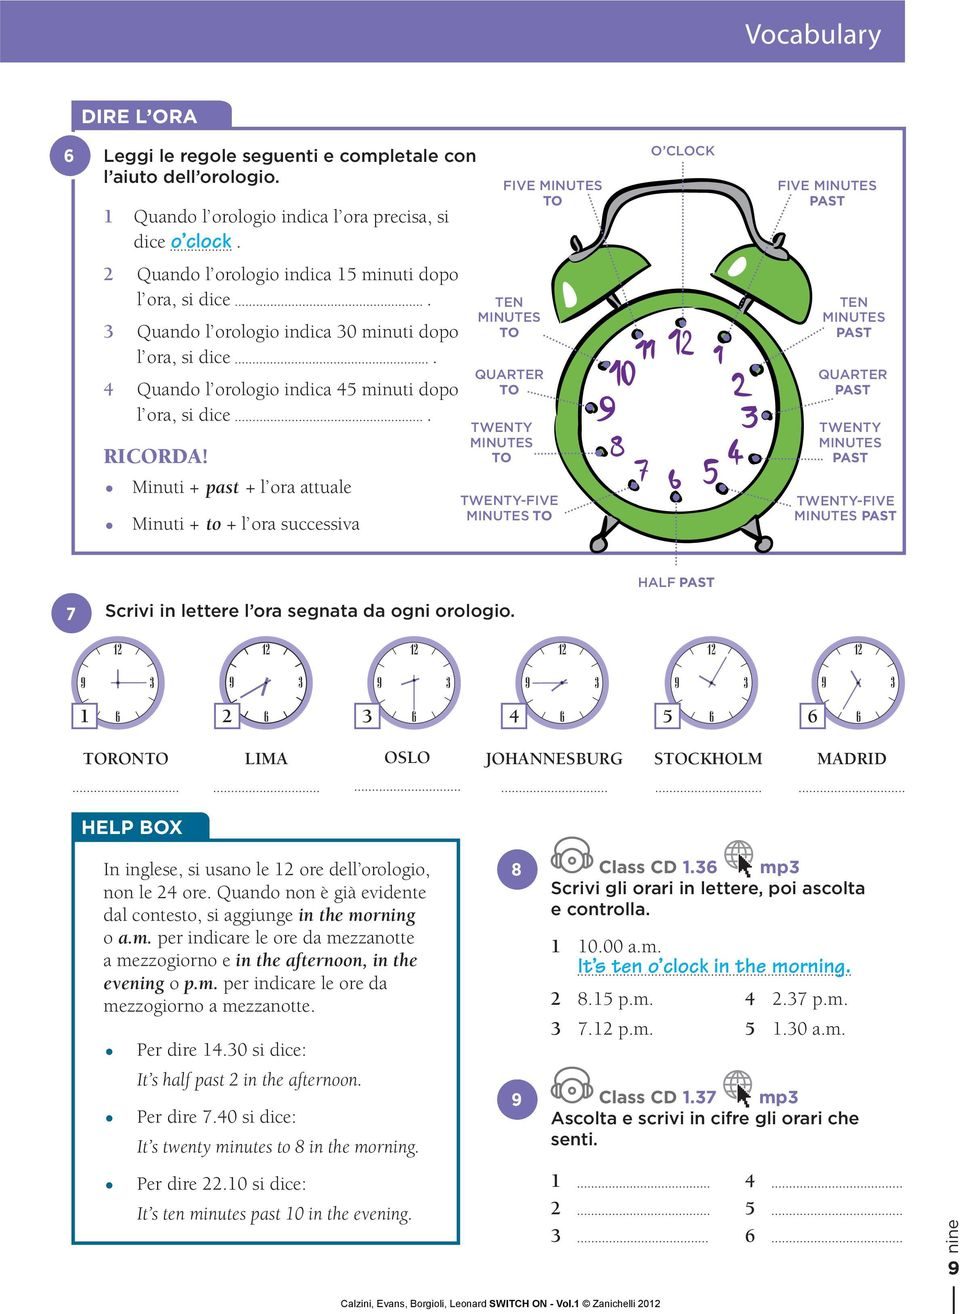 Minuti + past + l ora attuale Minuti + to + l ora successiva TWENTY MINUTES TO FIVE MINUTES TO TEN MINUTES TO QUARTER TO TWENTY-FIVE MINUTES TO FIVE MINUTES PAST TEN MINUTES PAST QUARTER PAST TWENTY